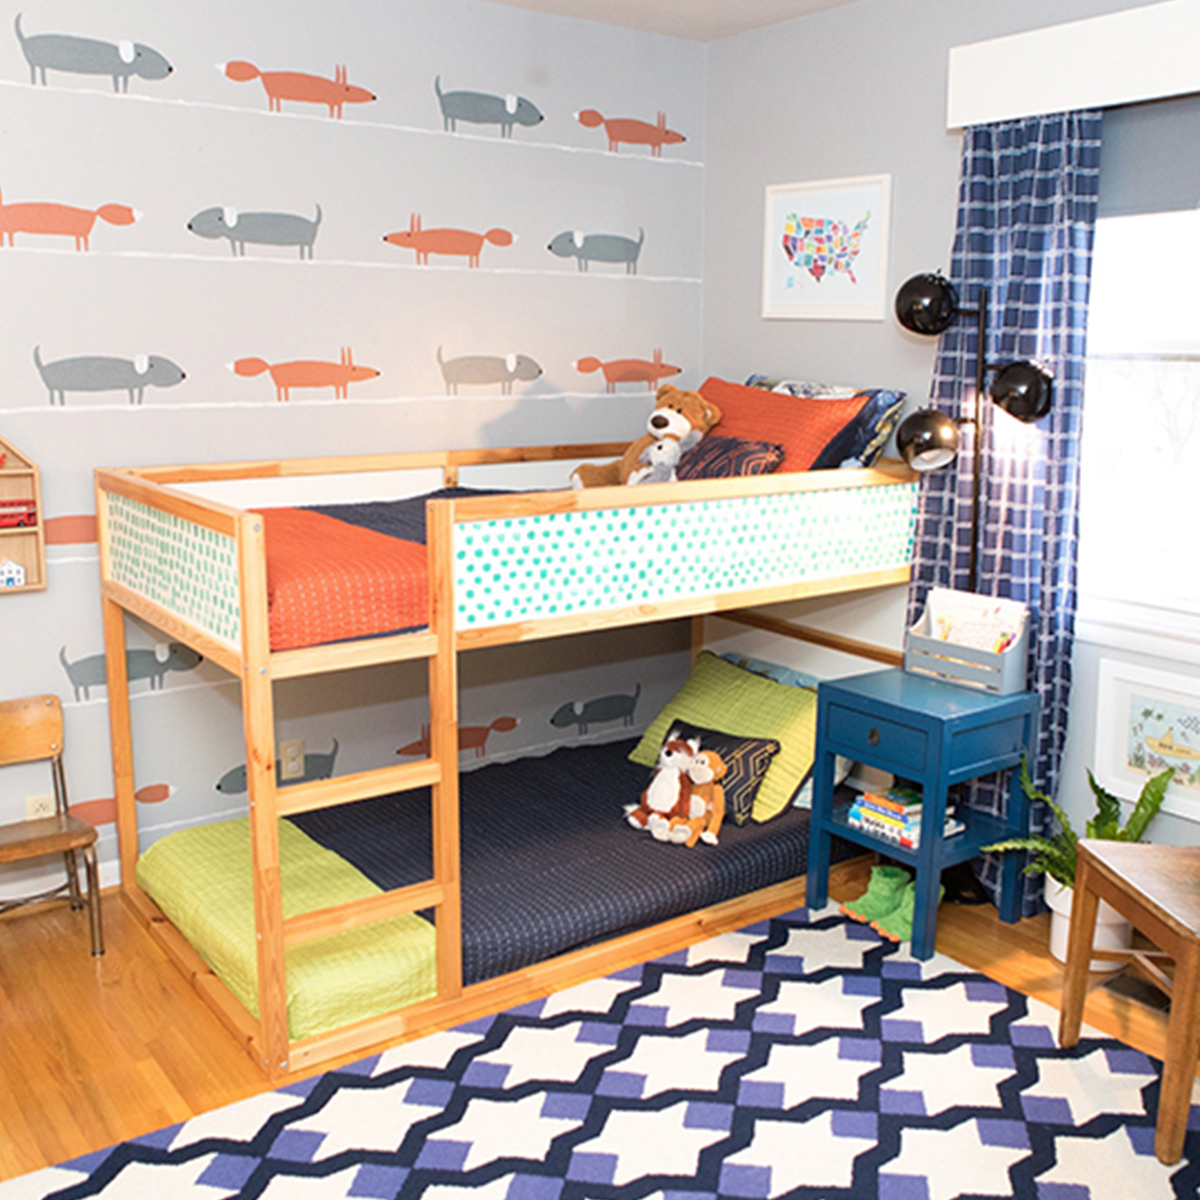 Kids color block quilt set great for any child's room. photo